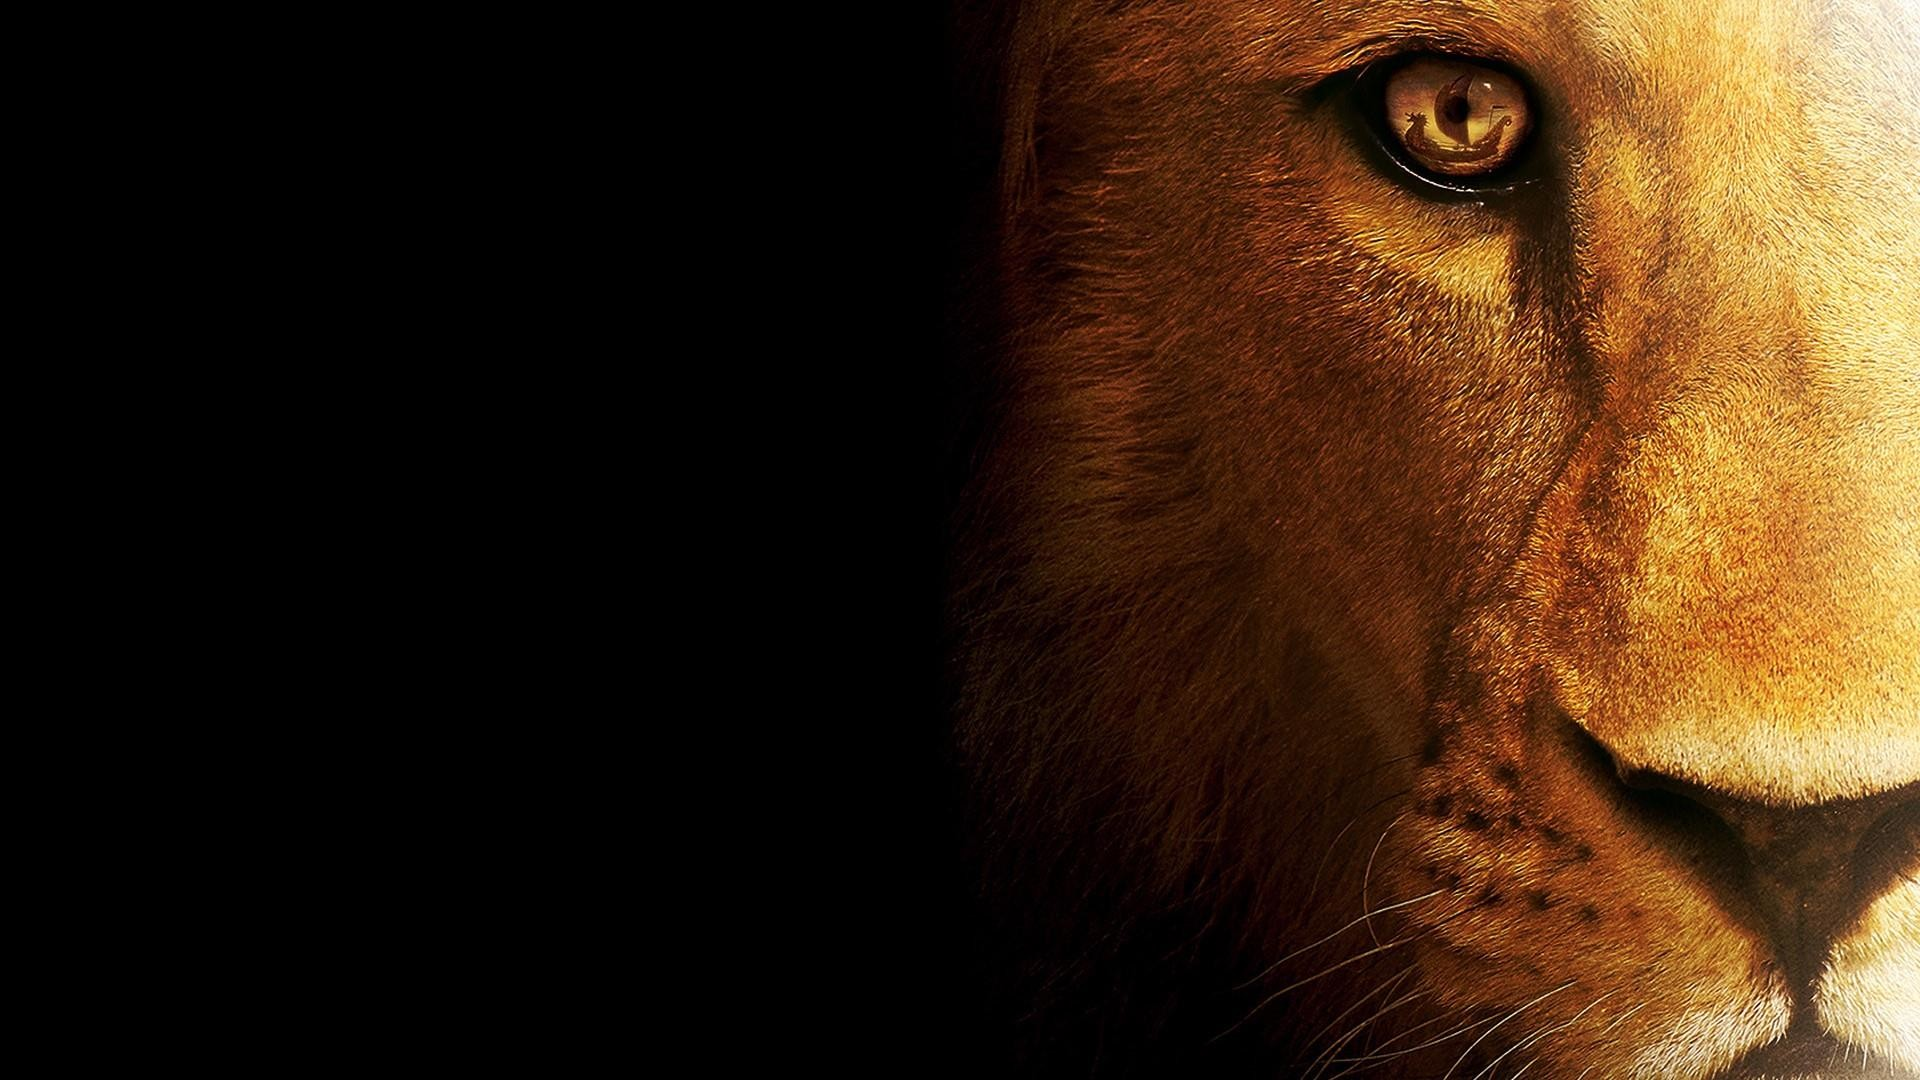 Res: 1920x1080, Lion Face Wallpaper   Wallpaper Studio 10   Tens of thousands HD and  UltraHD wallpapers for Android, Windows and Xbox